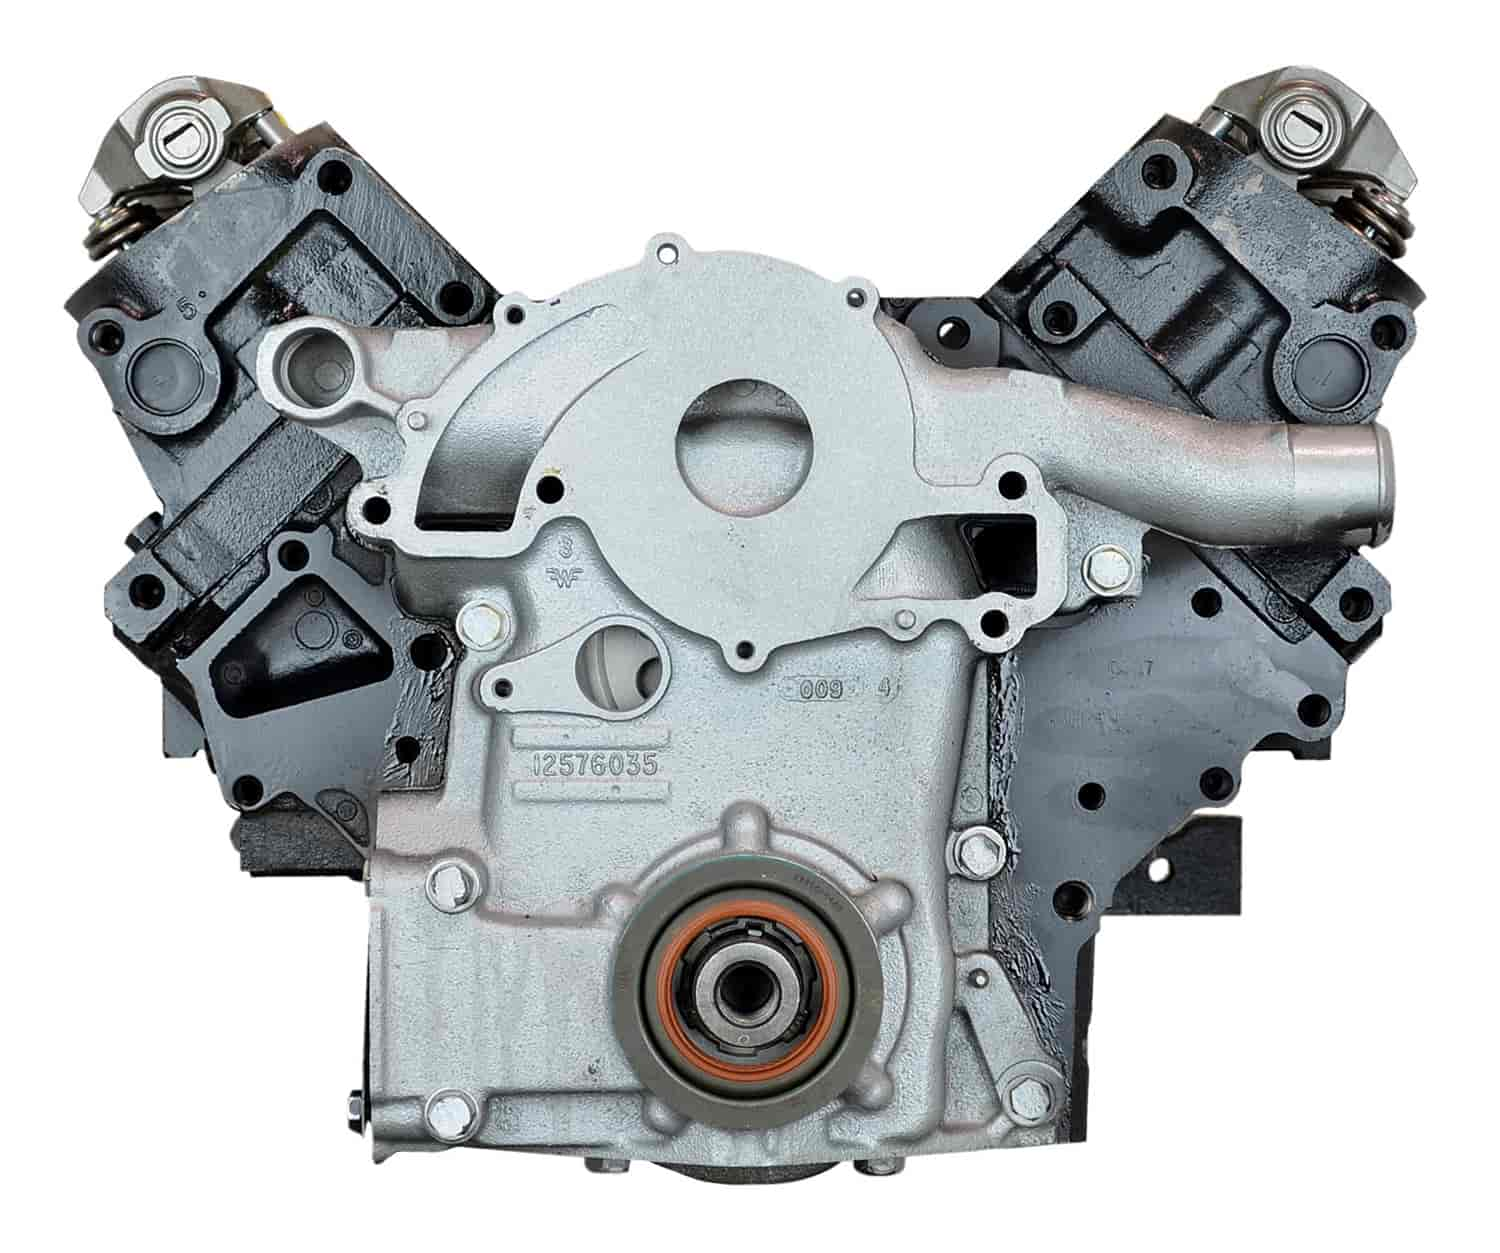 Atk Engines Db62  Remanufactured Crate Engine For 1997